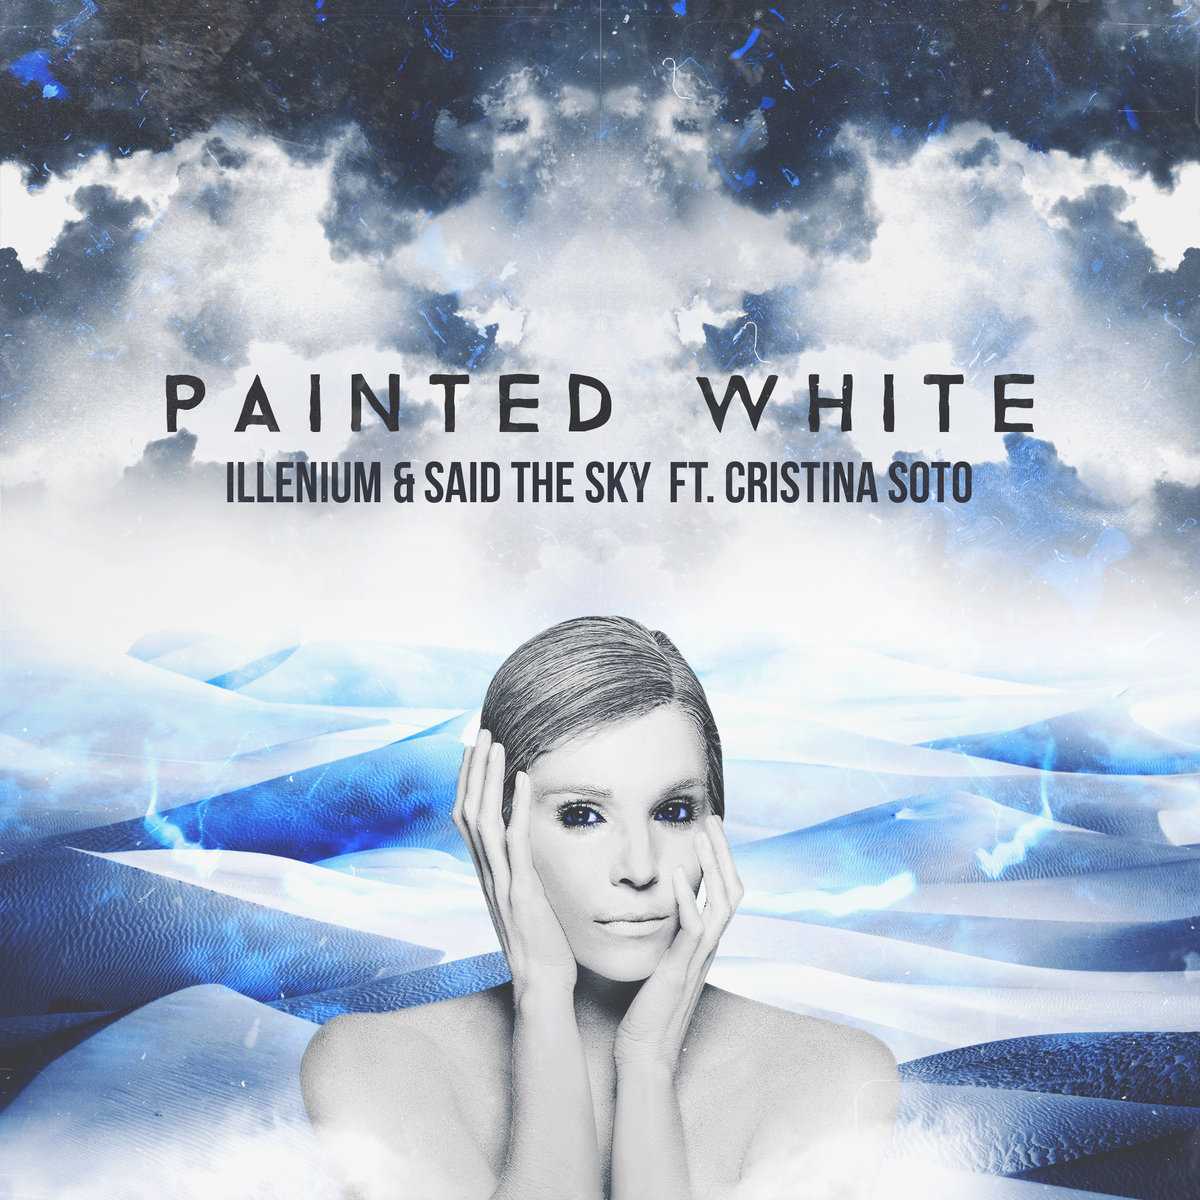 Illenium, Said The Sky, & Cristina Soto - Painted White @ 'Painted White' album (idm, bass)